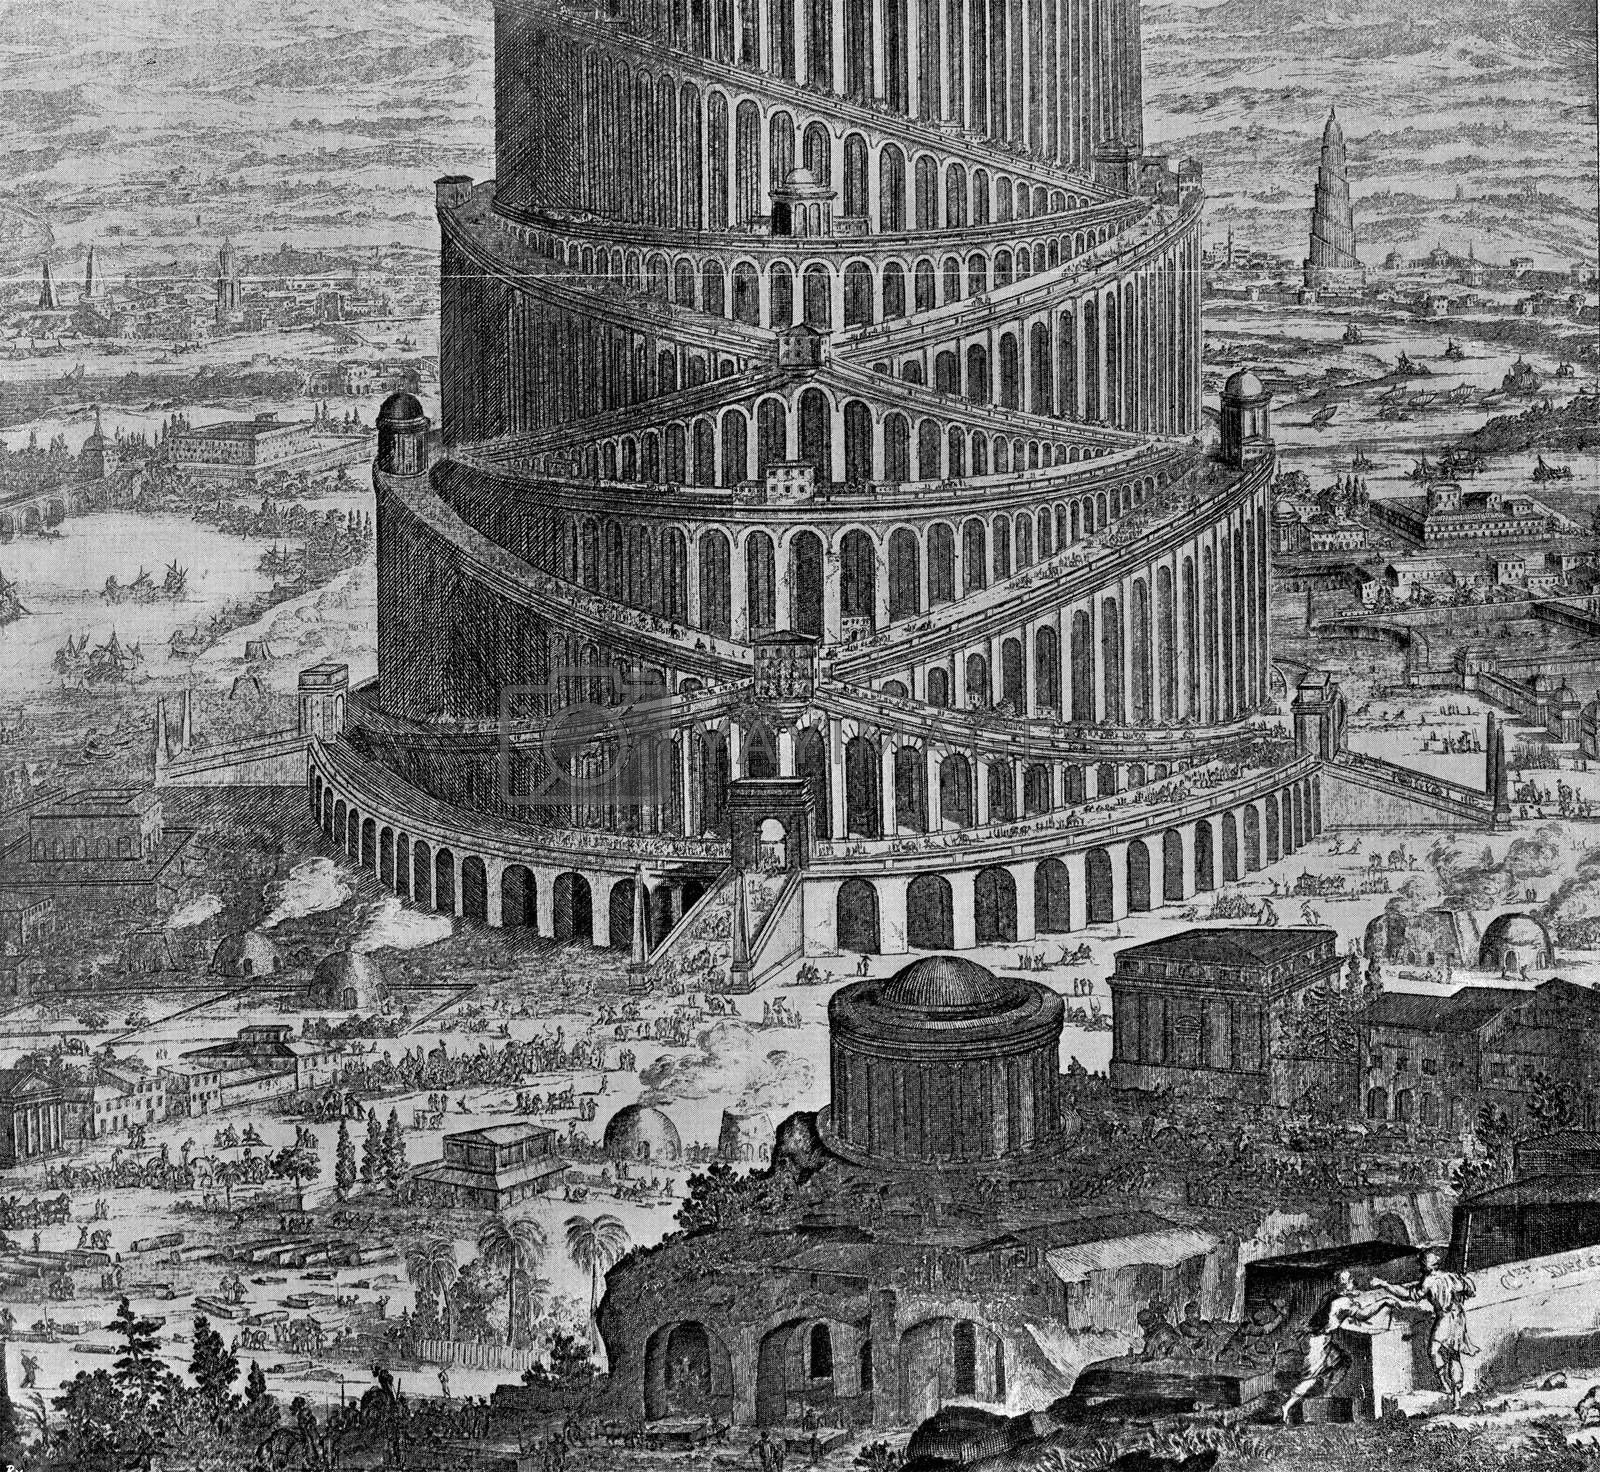 Construction of the tower of Babel, vintage engraved illustration. From the Universe and Humanity, 1910.